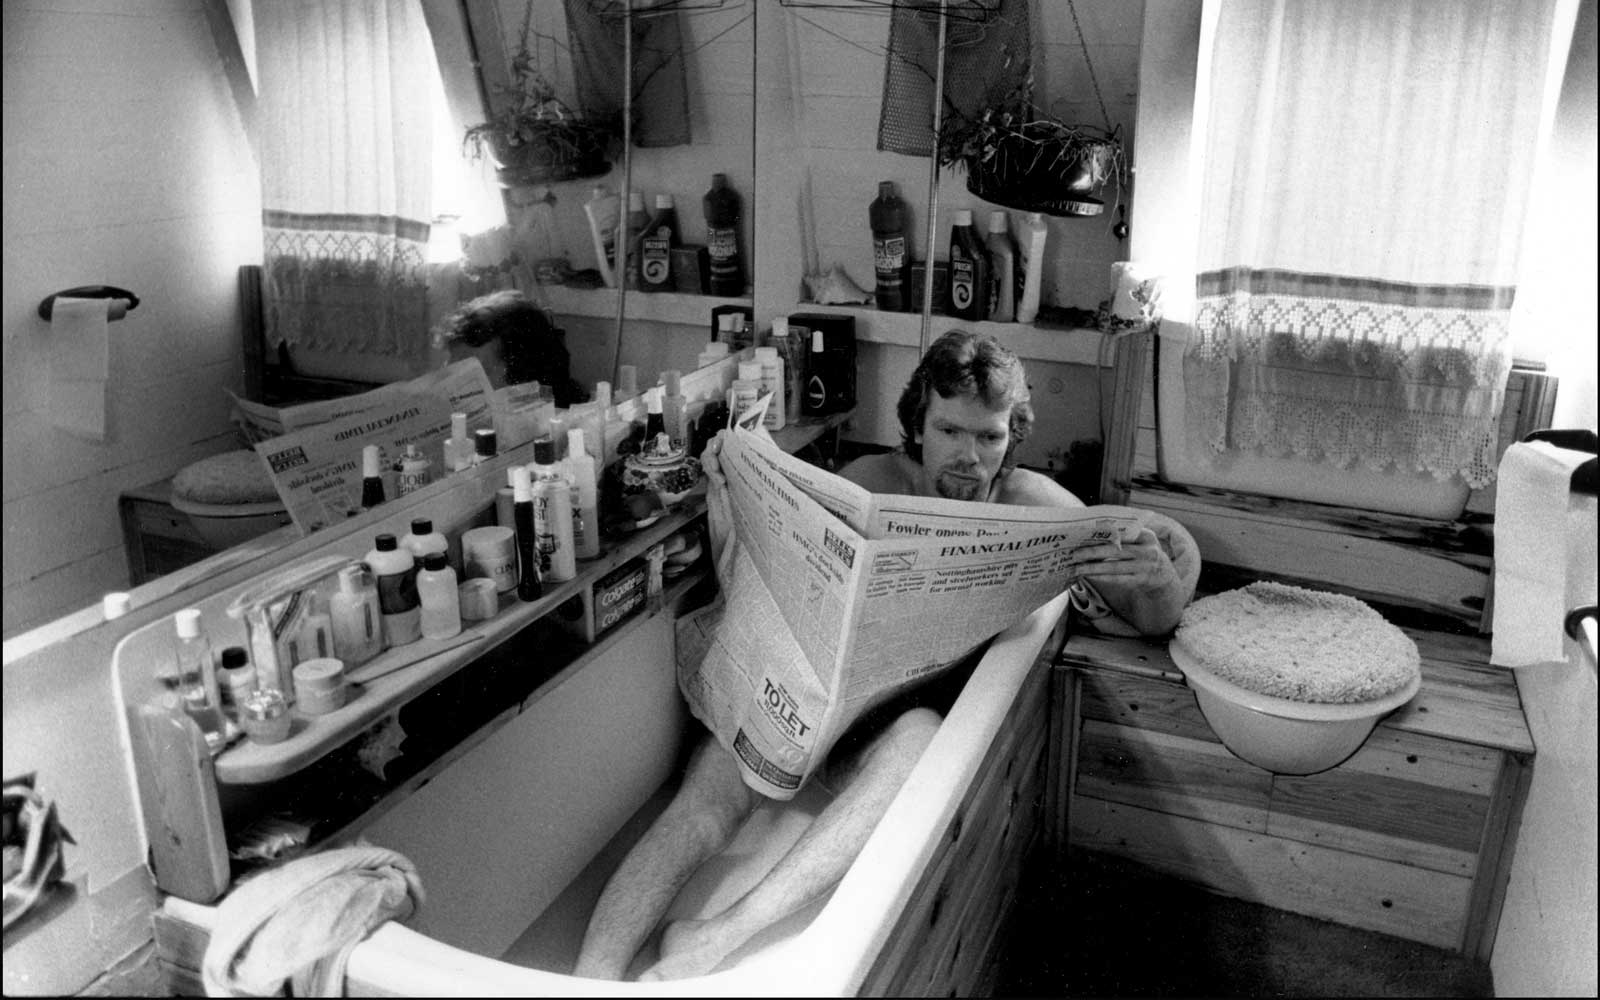 Richard Branson in a bath tub